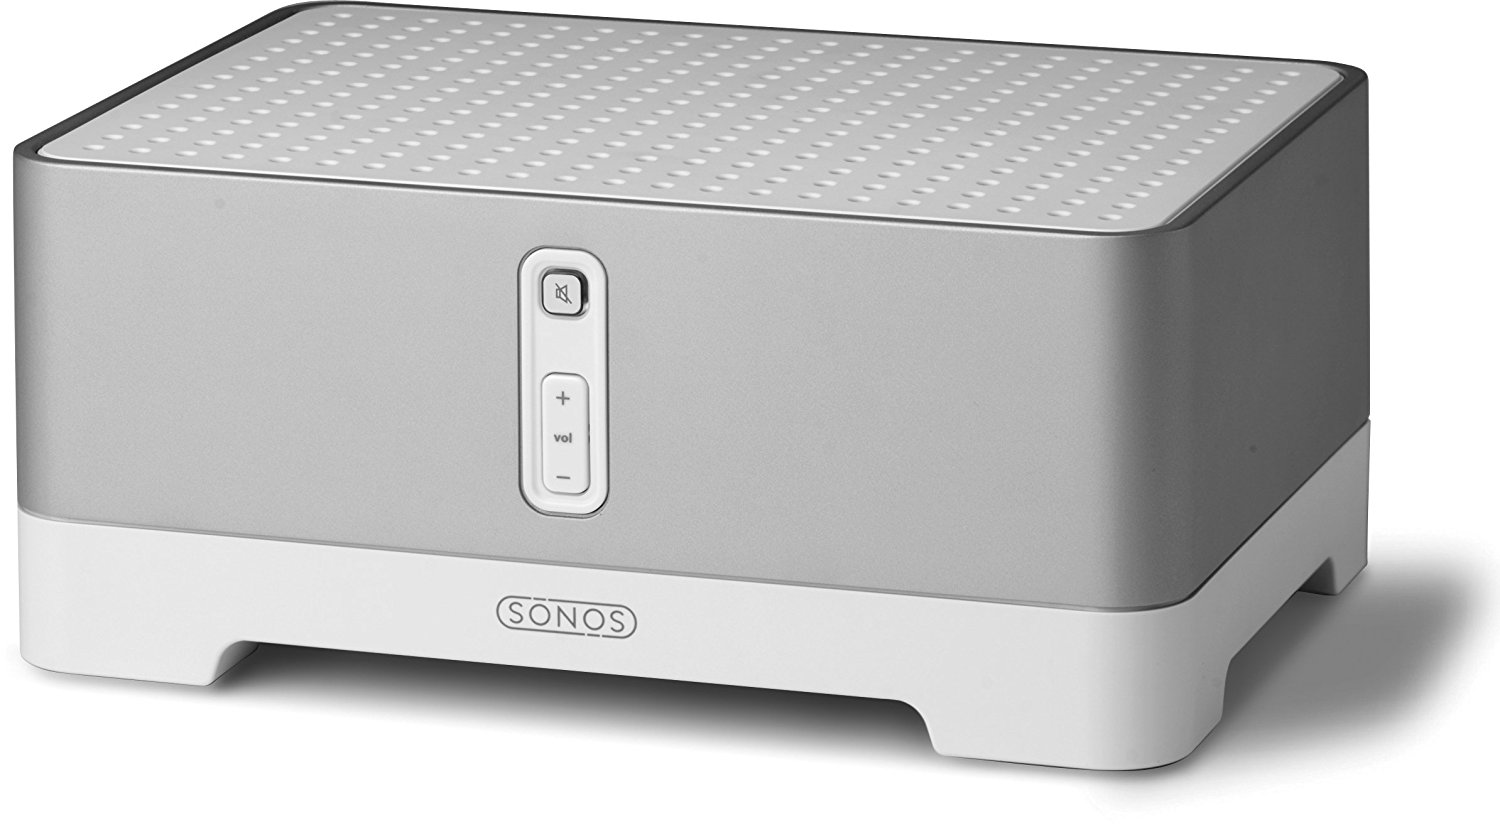 Sonos launch the ZP100 in January of 2005 - It's a hit.